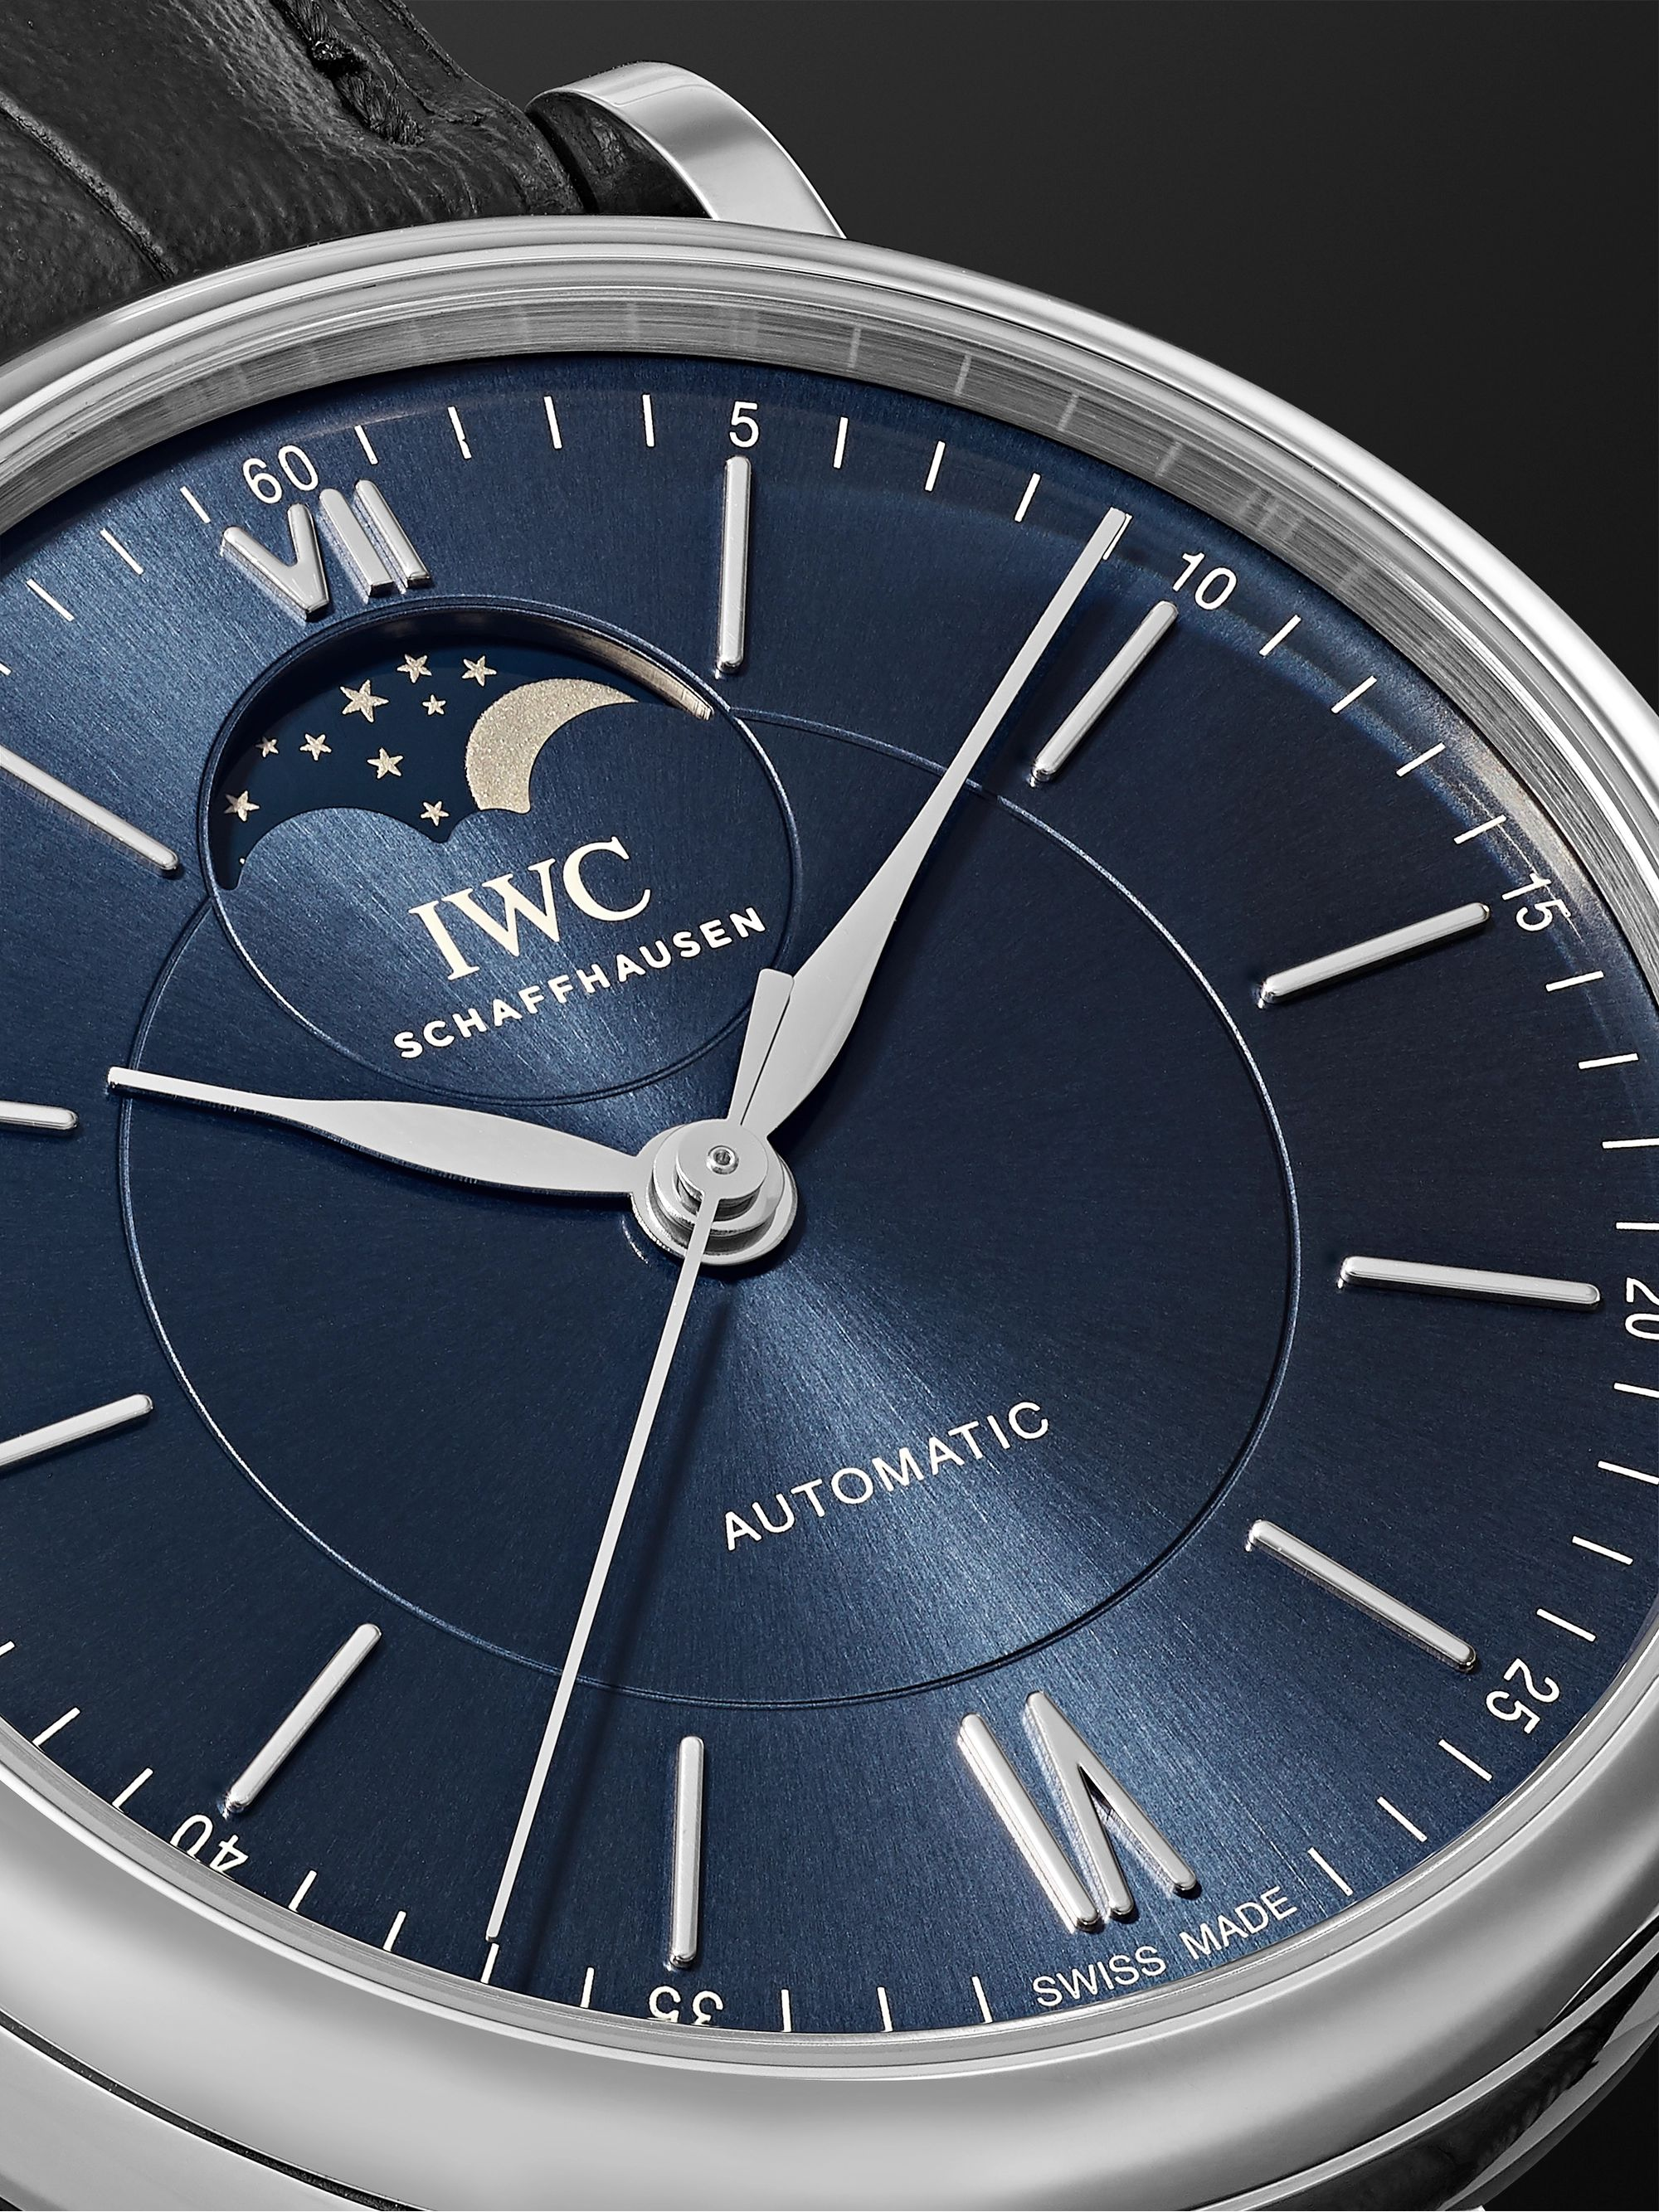 IWC SCHAFFHAUSEN Portofino Automatic Moon Phase 40mm Stainless Steel and Alligator Watch